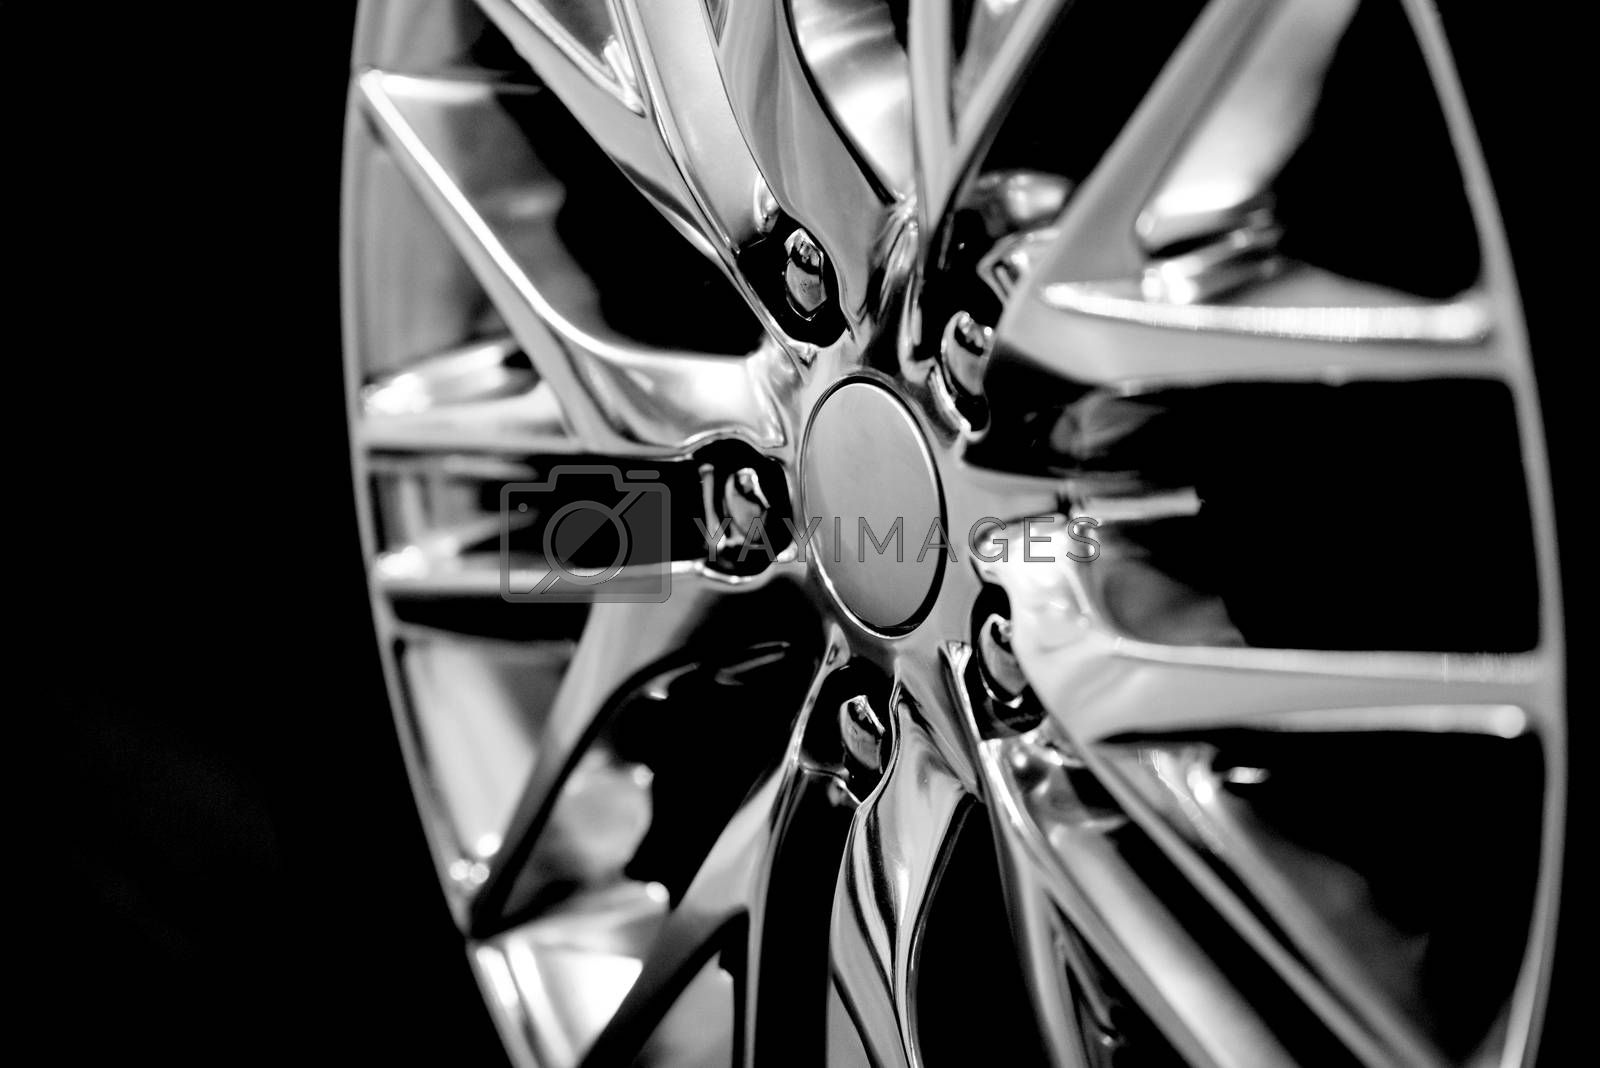 Luxury chrome alloy wheel in close-up as an automotive background (B&W HDR filter).